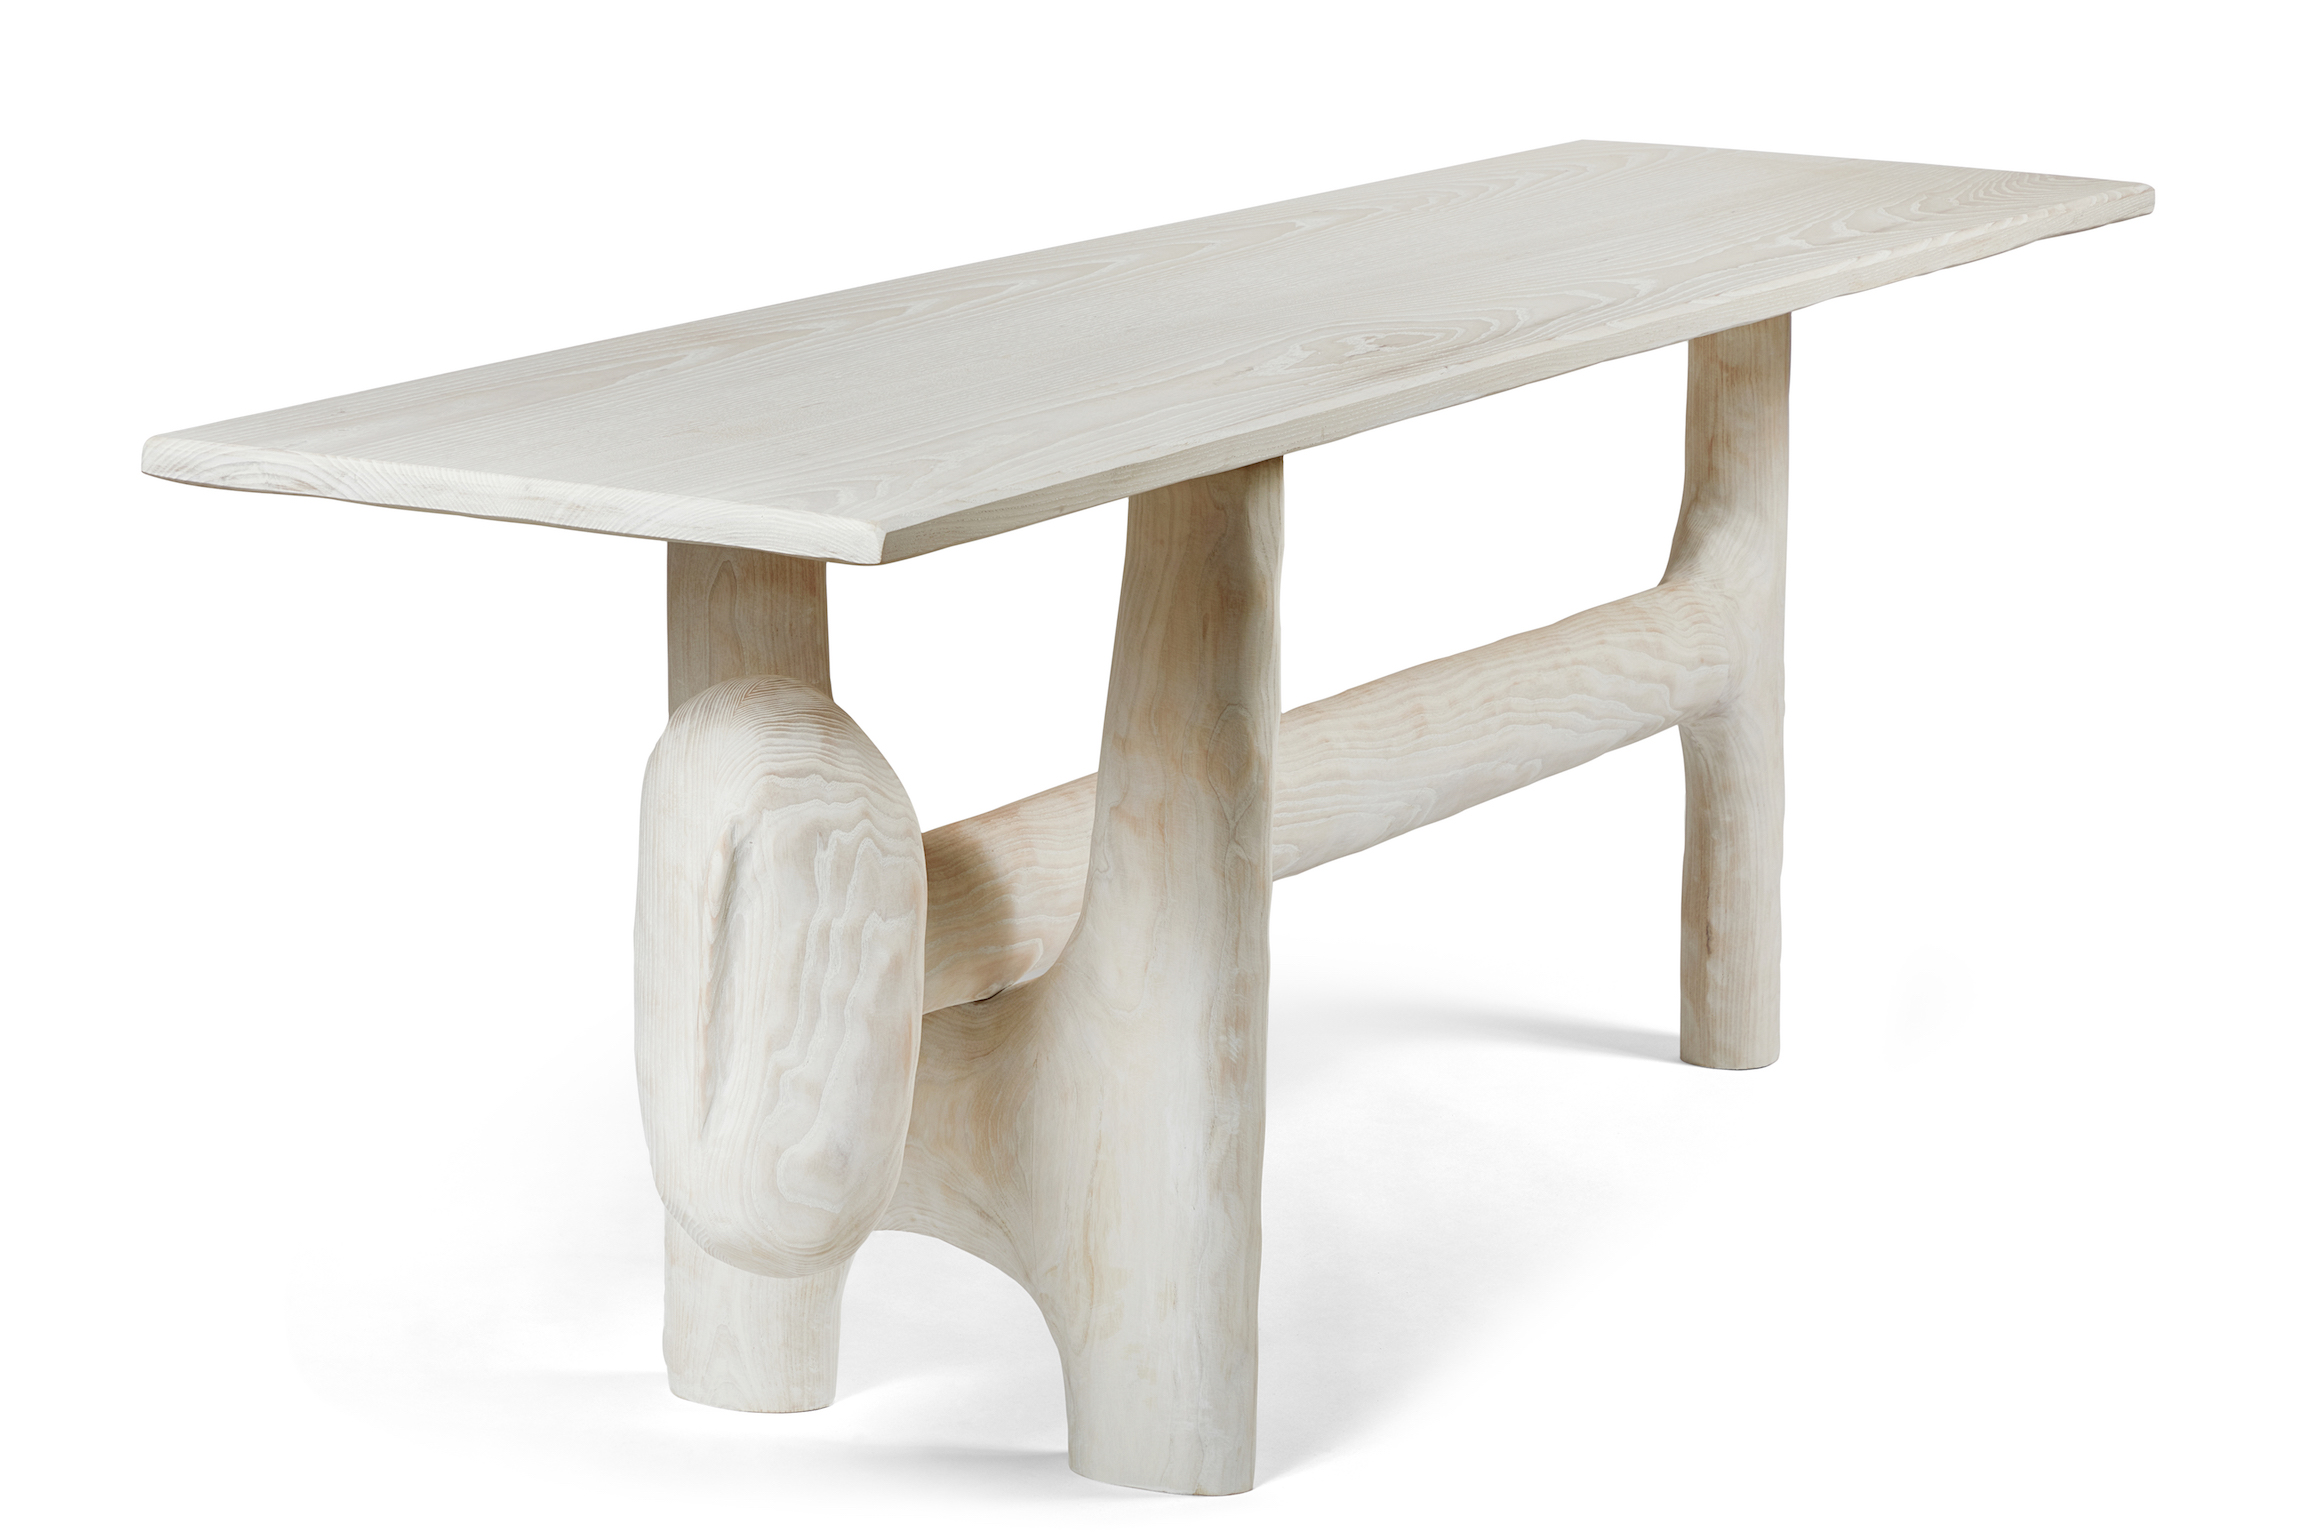 SCULPTURE 004 CONSOLE TABLE (22).jpg